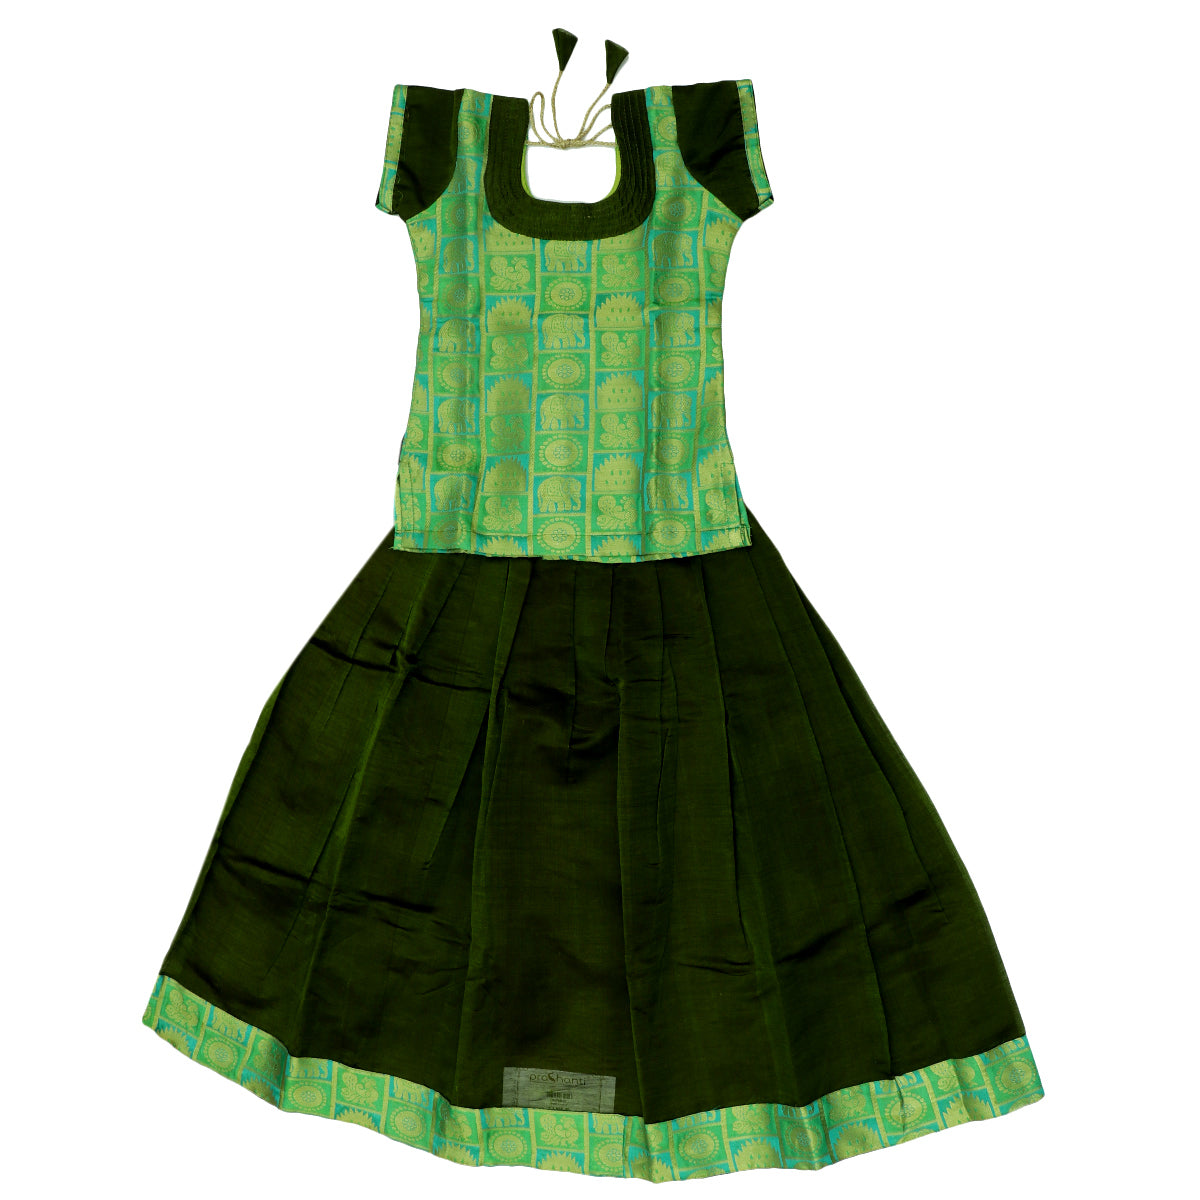 Paavadai Sattai - Light green brocade blouse and Mehandi Green with Simple Zari border ( 6 years)